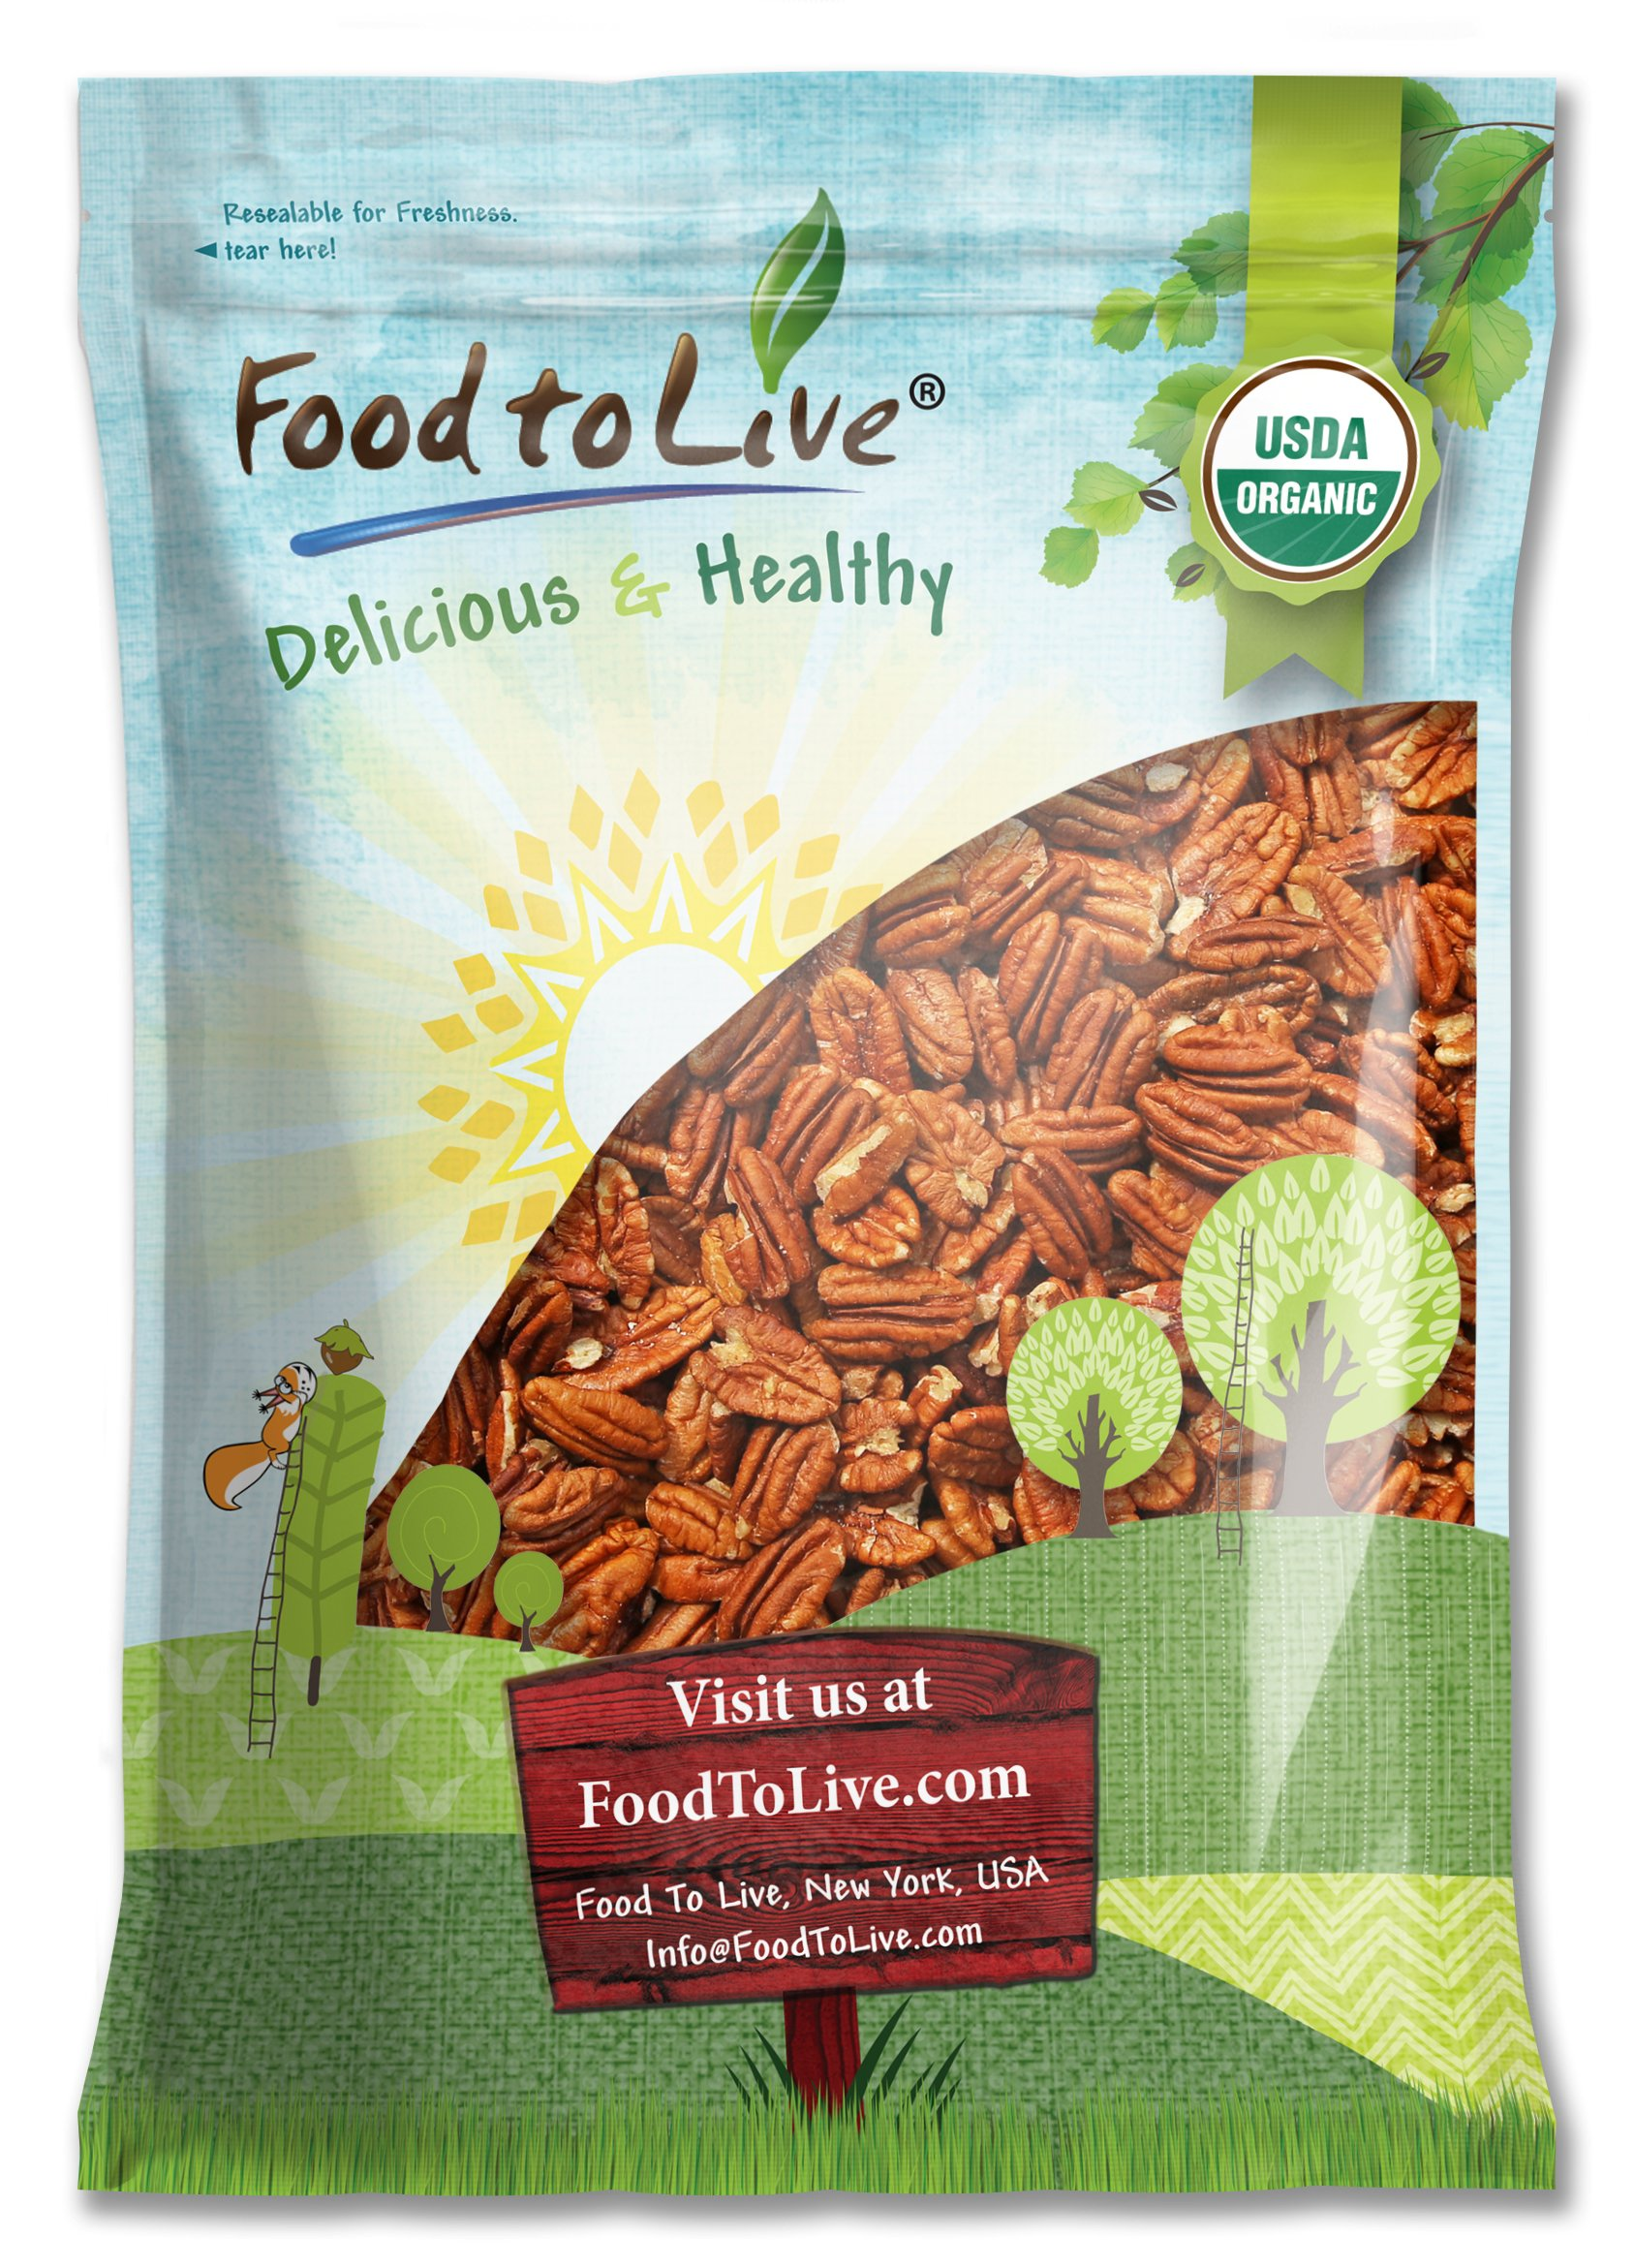 Food To Live ® Organic Pecans (Raw, No Shell) (6 Pounds) by Food to Live  (Image #1)